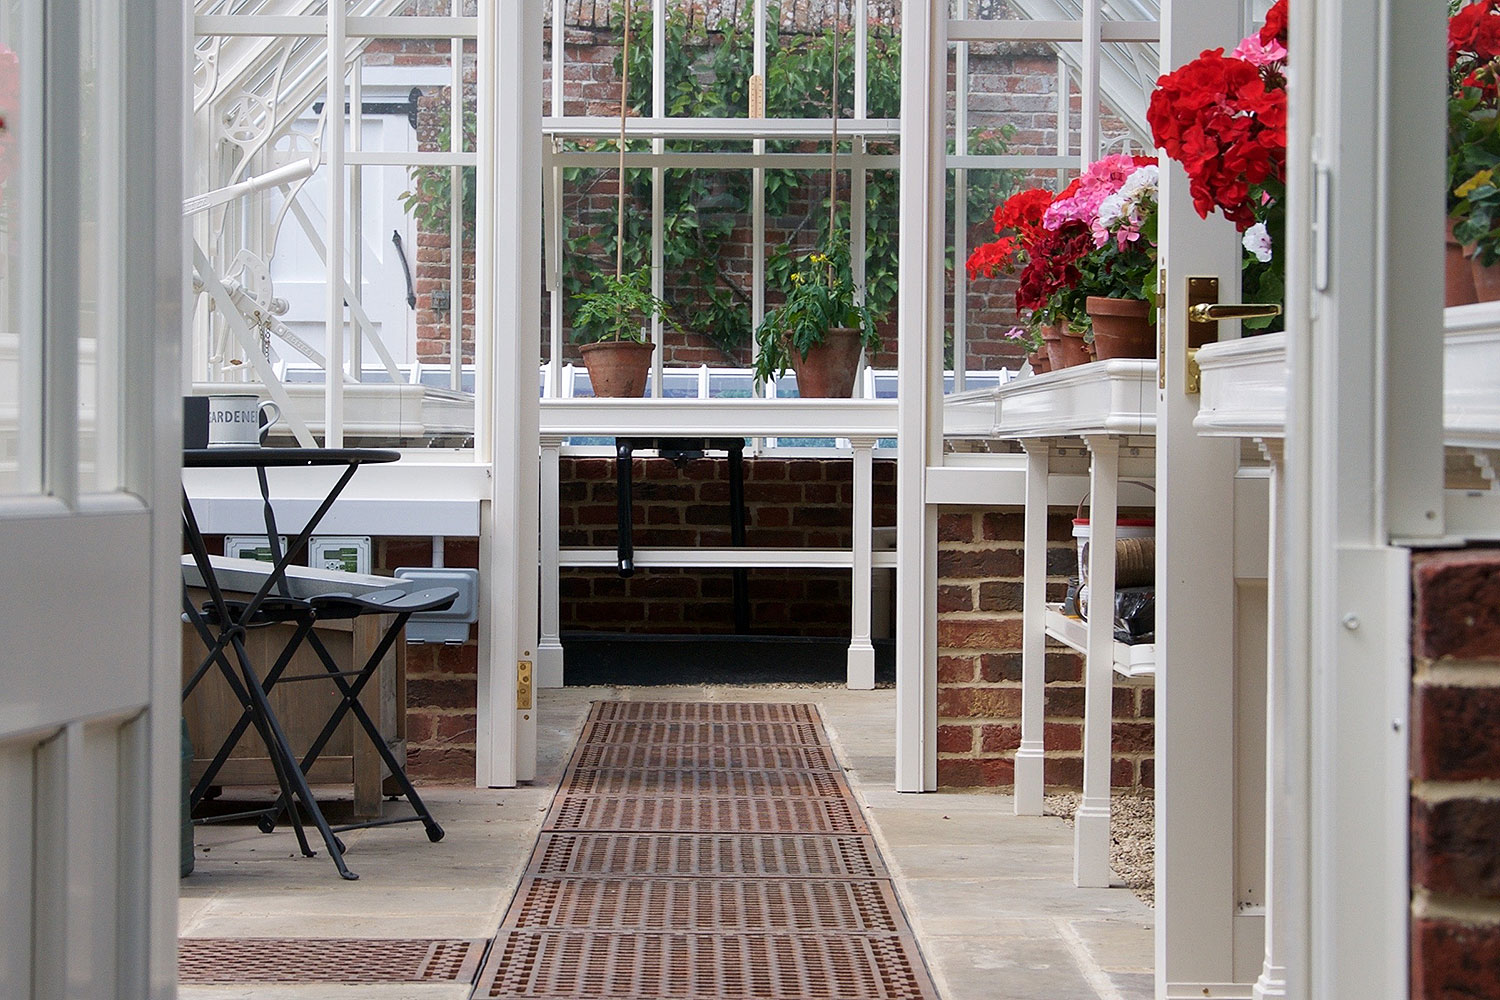 Floor grids (Alitex greenhouse accessories)